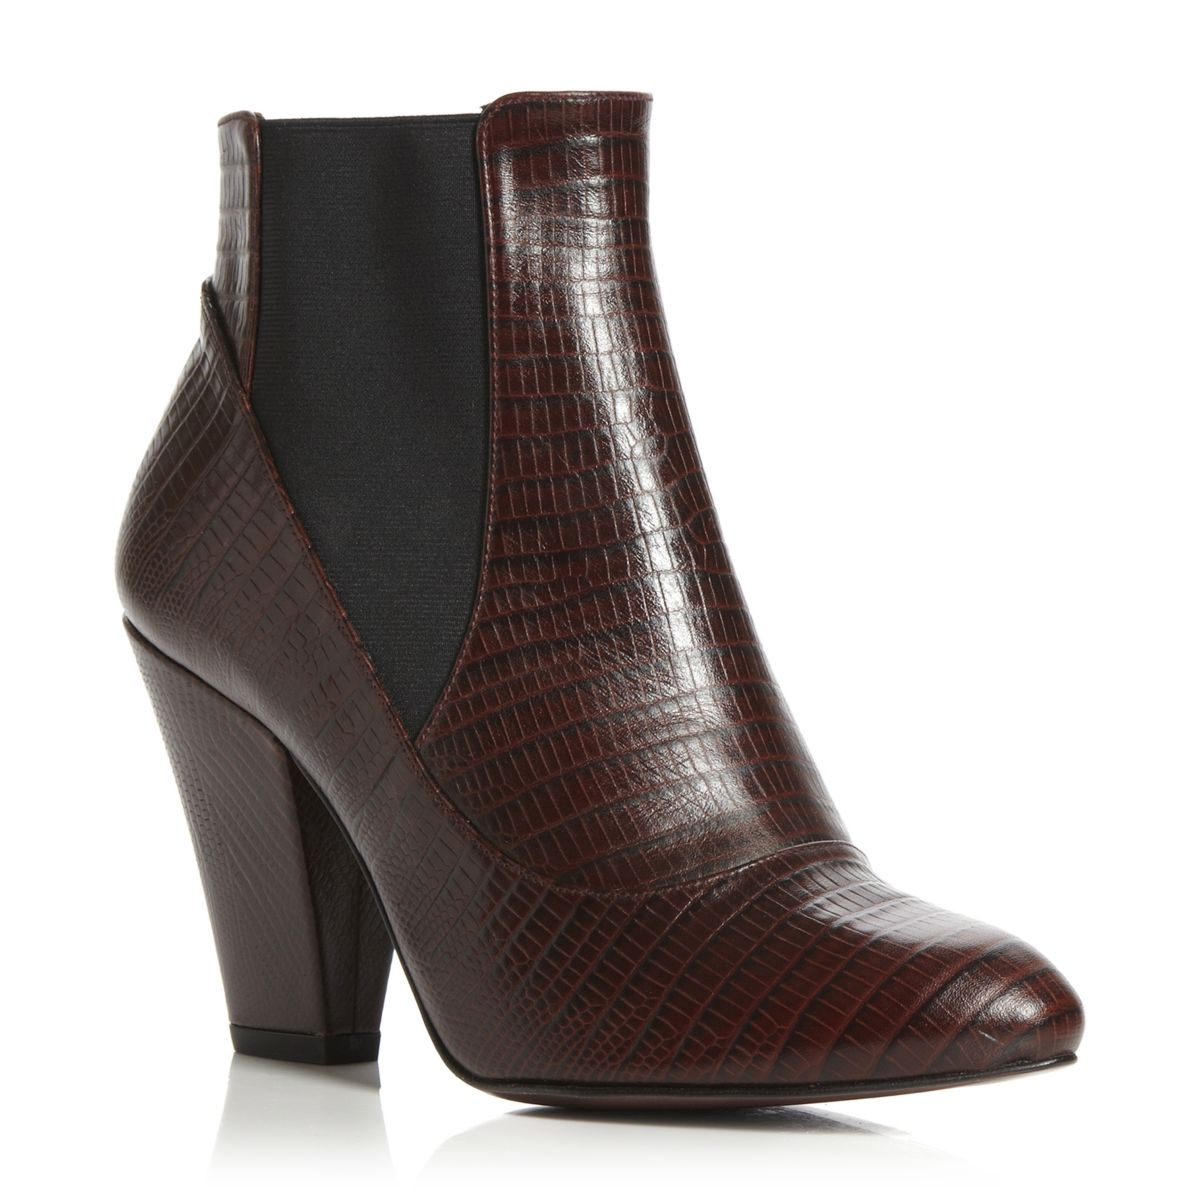 PIED-A-TERRE-LADIES-SATRE-BROWN-LEATHER-CROC-WOMENS-HEEL-ANKLE-BOOTS-SIZE-3-8-UK